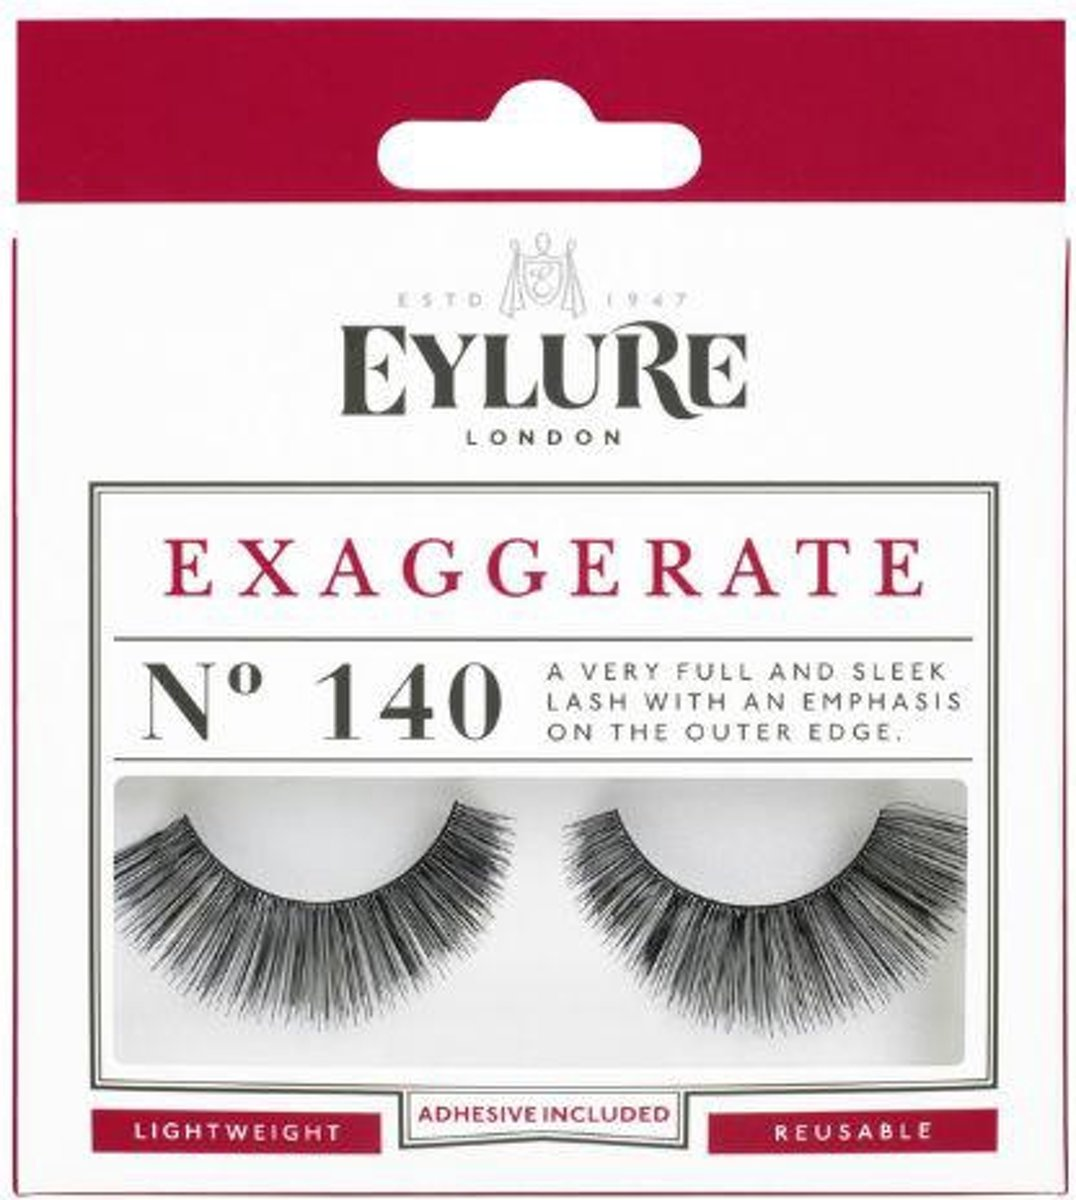 Eylure Exaggerate No. 140